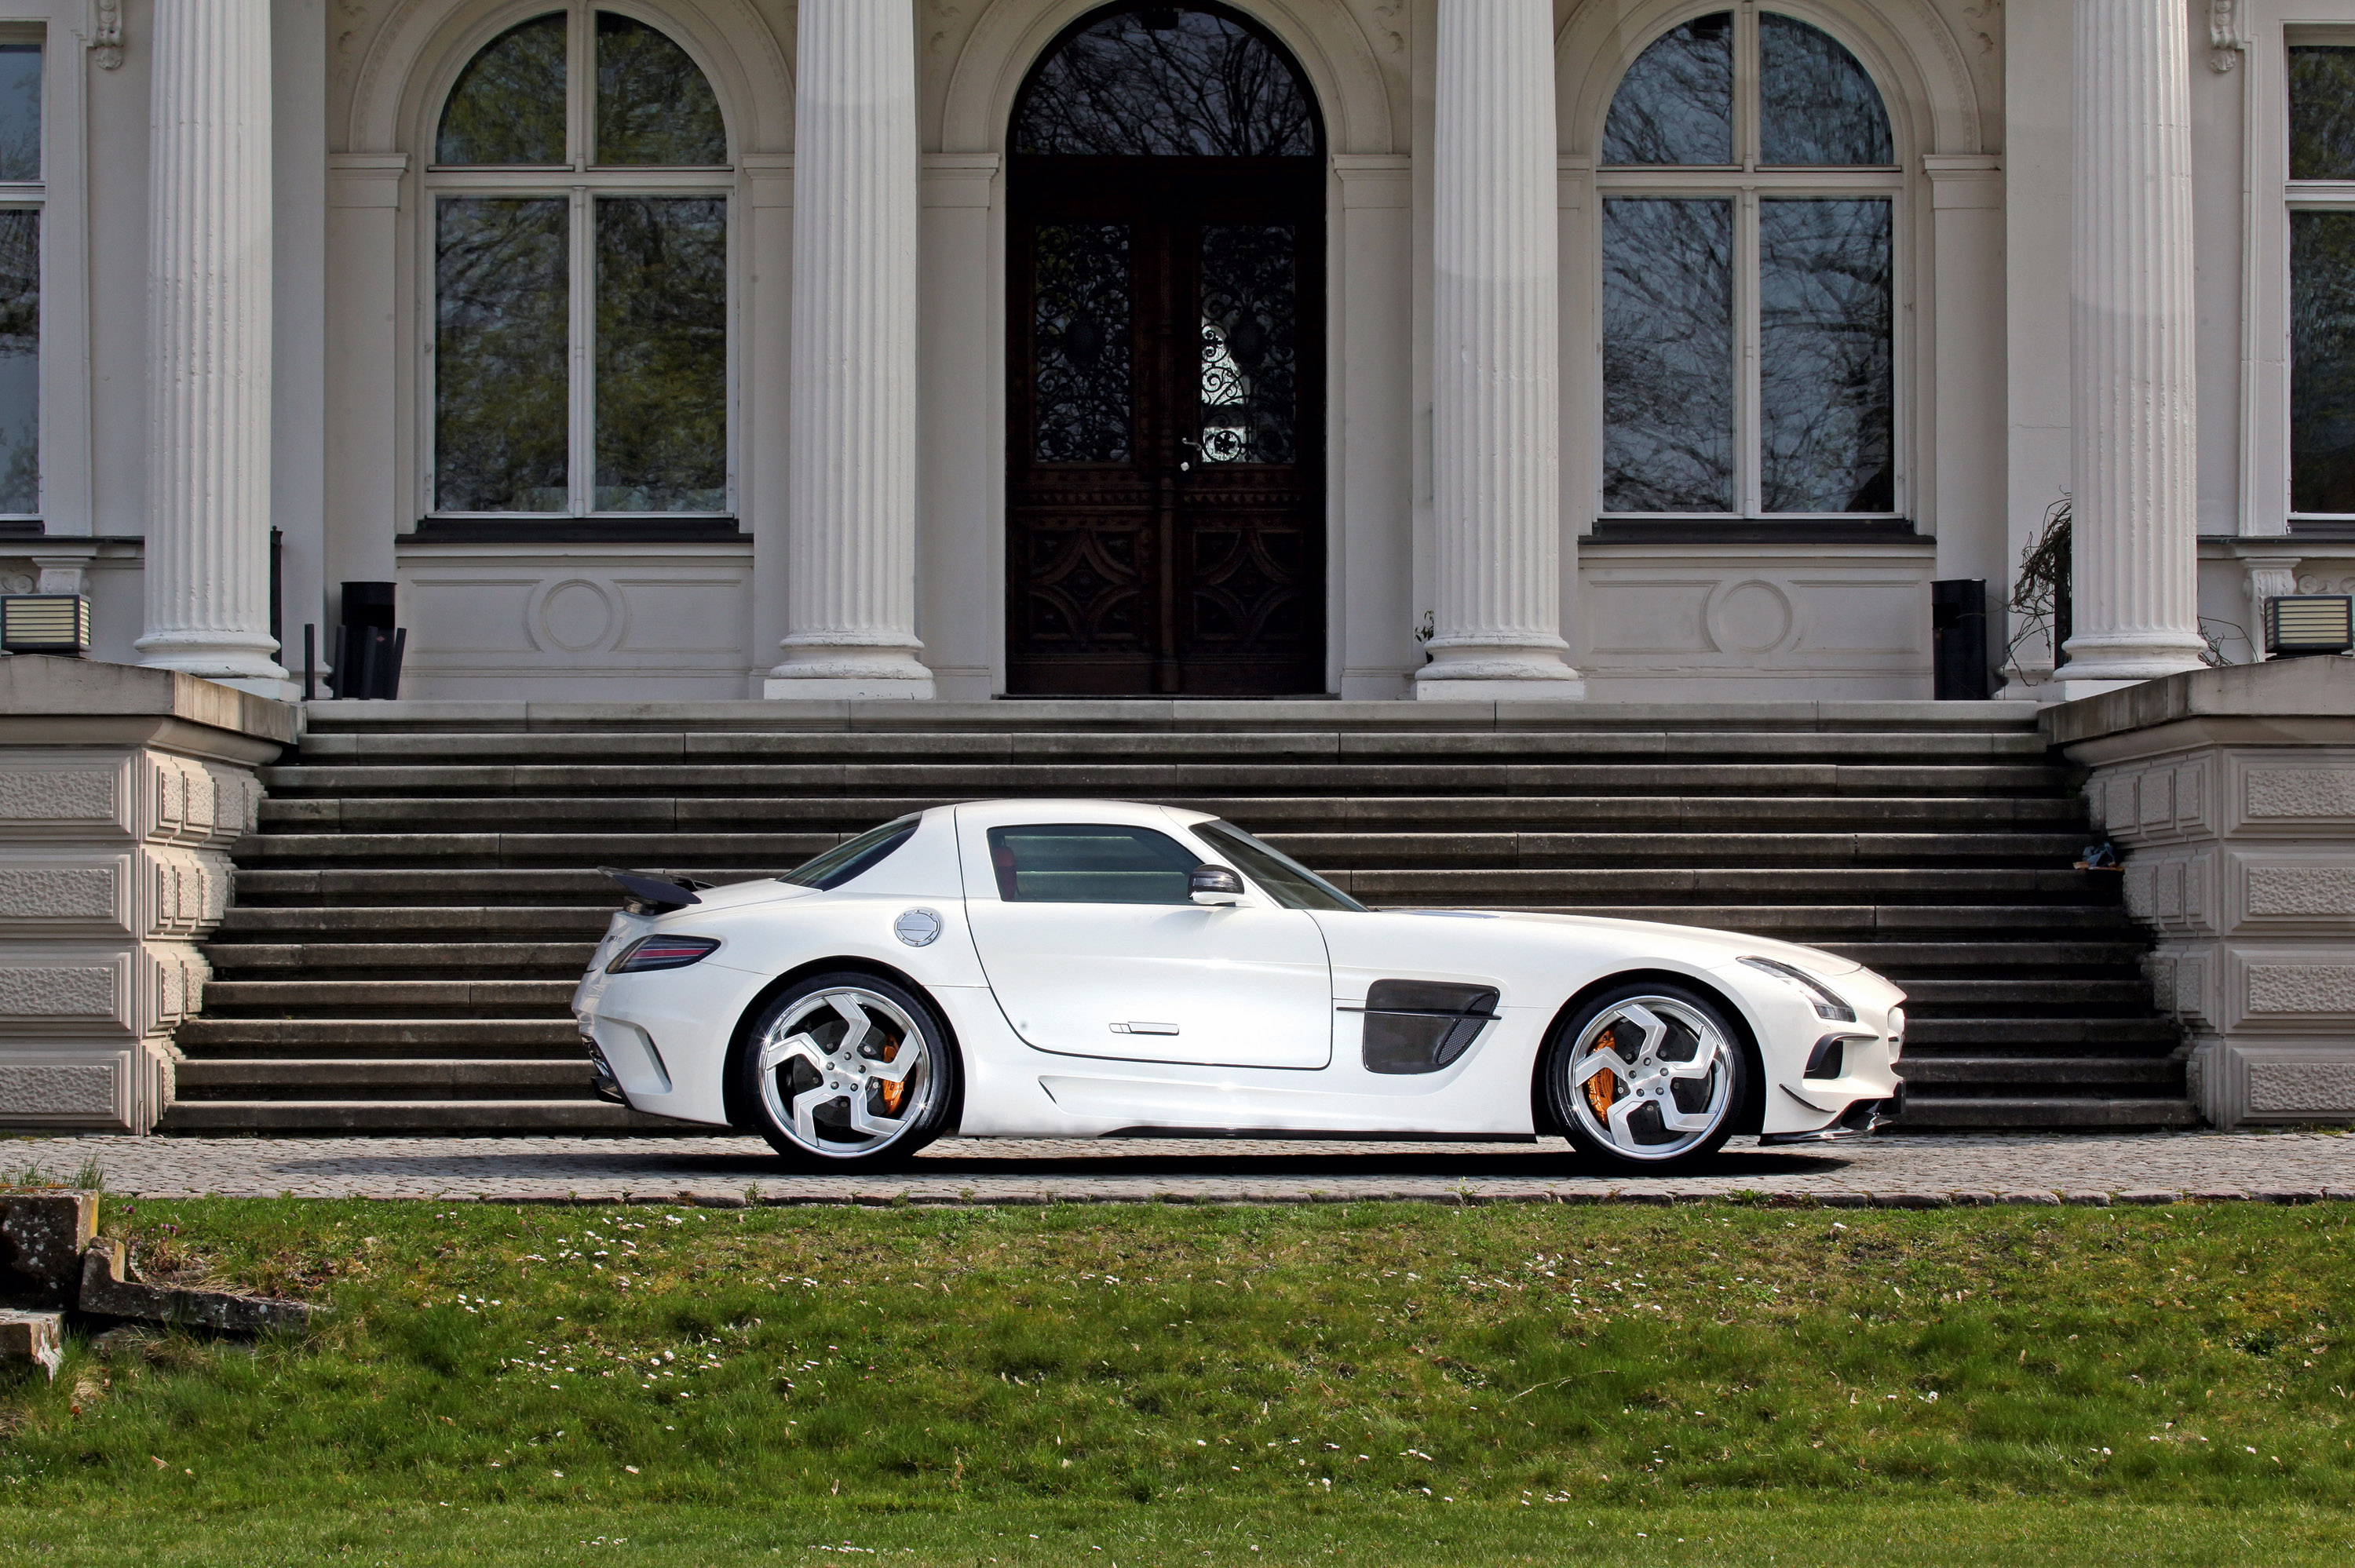 Mercedes SLS AMG 2 SGA Aerodynamics Turns the Mercedes SLS AMG to Black Series